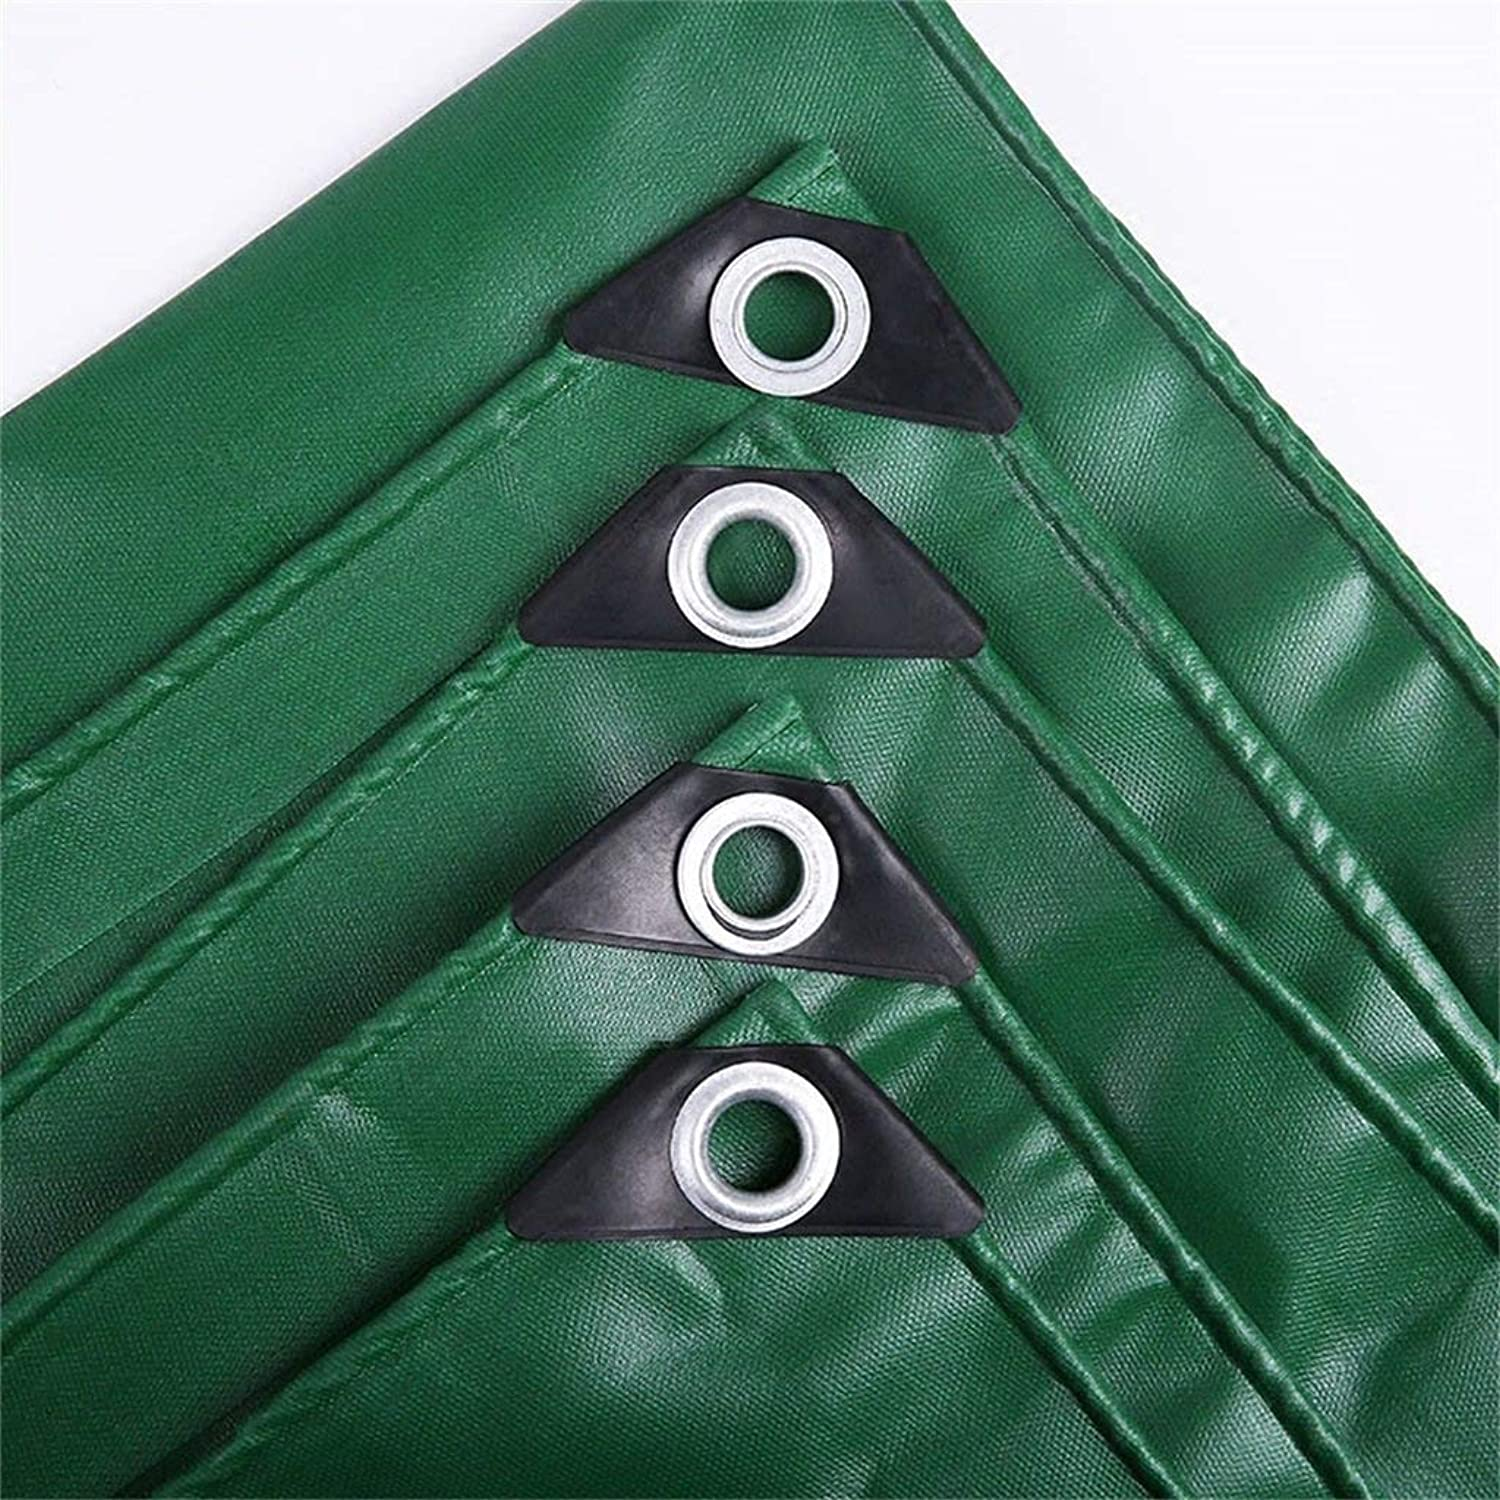 Tarp Durable Quality Tarpaulin Ground Sheet Waterproof Cover 550g m2 Car Boat Roof Rain Cover Camping Trailer Tent Green Pool